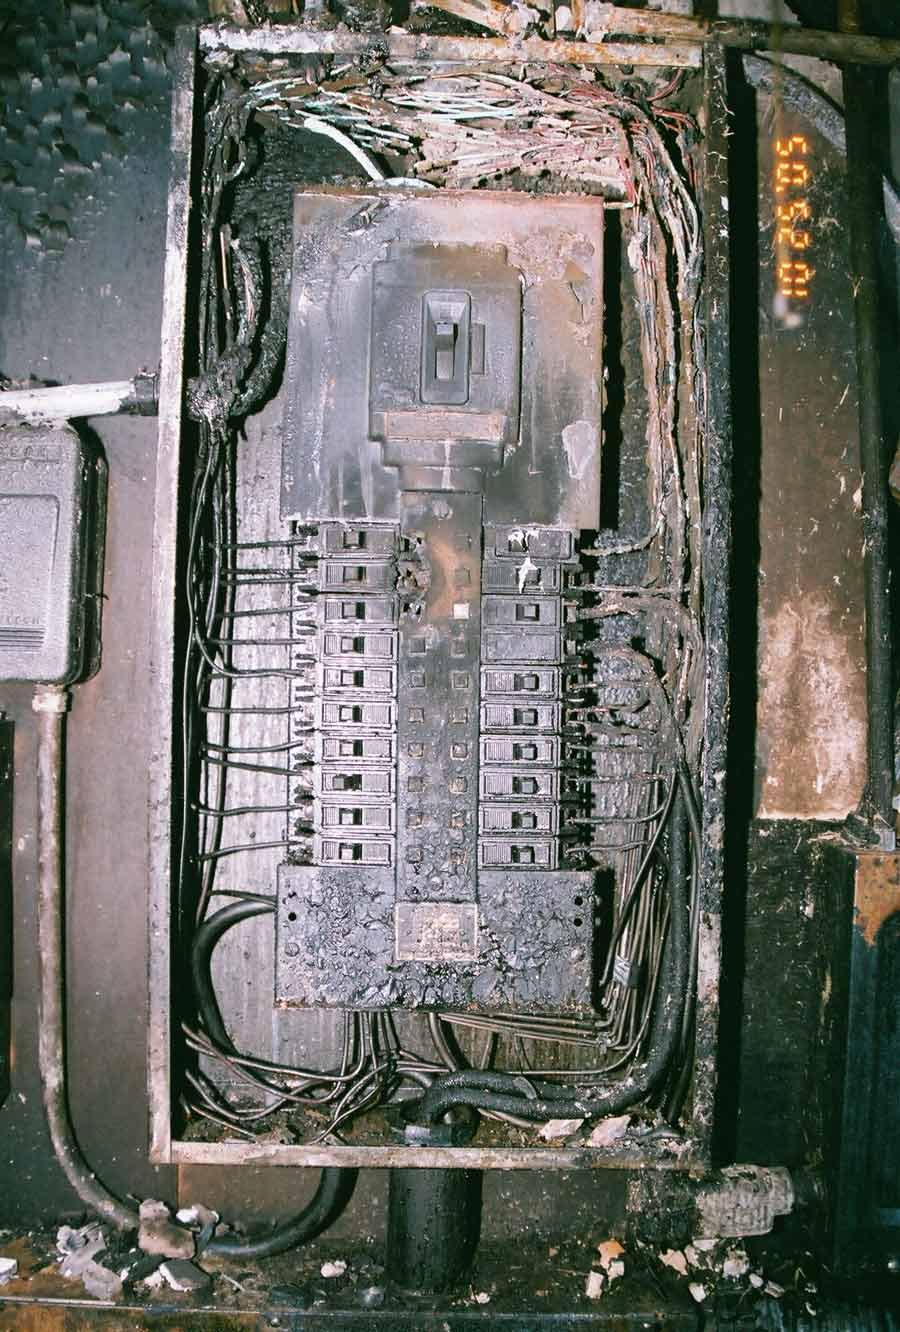 522187 Wiring Questions My Garage further Wiring Diagram For A Manual Transfer Switch also What To Do If An Electrical Breaker Keeps Tripping In Your Home further Replacing Electrical Panels Brands together with What Is Mcb Mccb Elcb And Rccb. on electrical circuit breaker panel diagram